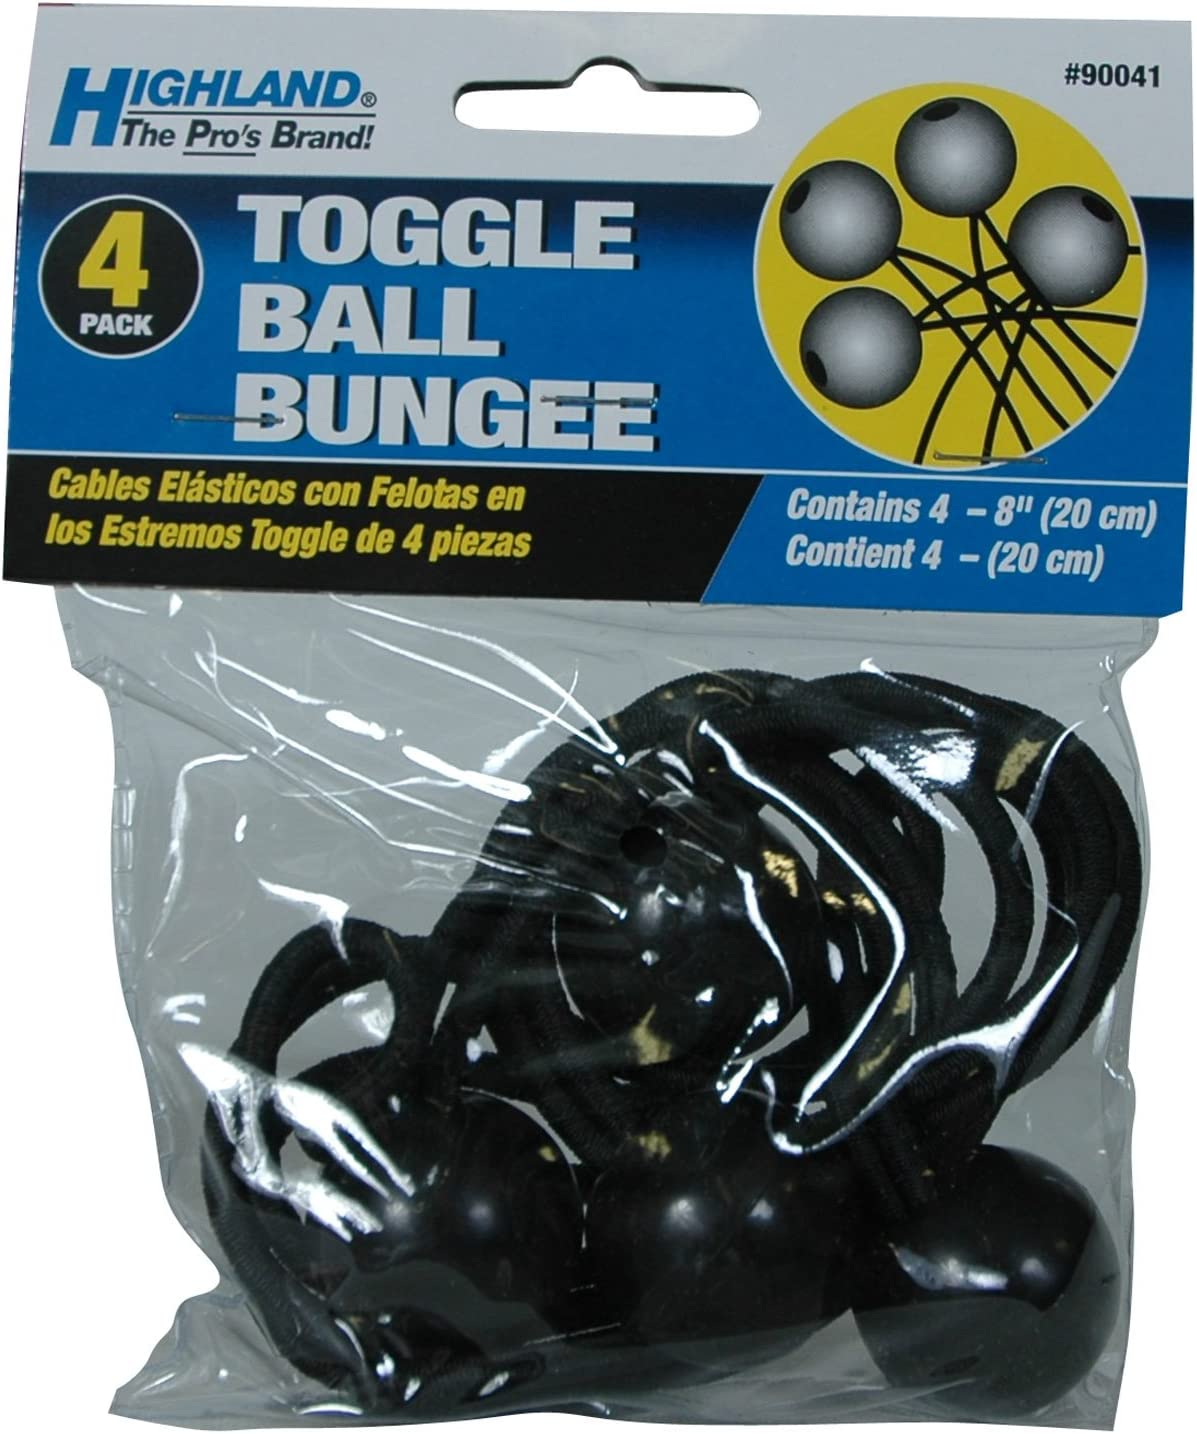 """Highland pro Toggle ball bungee 4-8/"""" bungee balls part # 90041 4 per pack"""